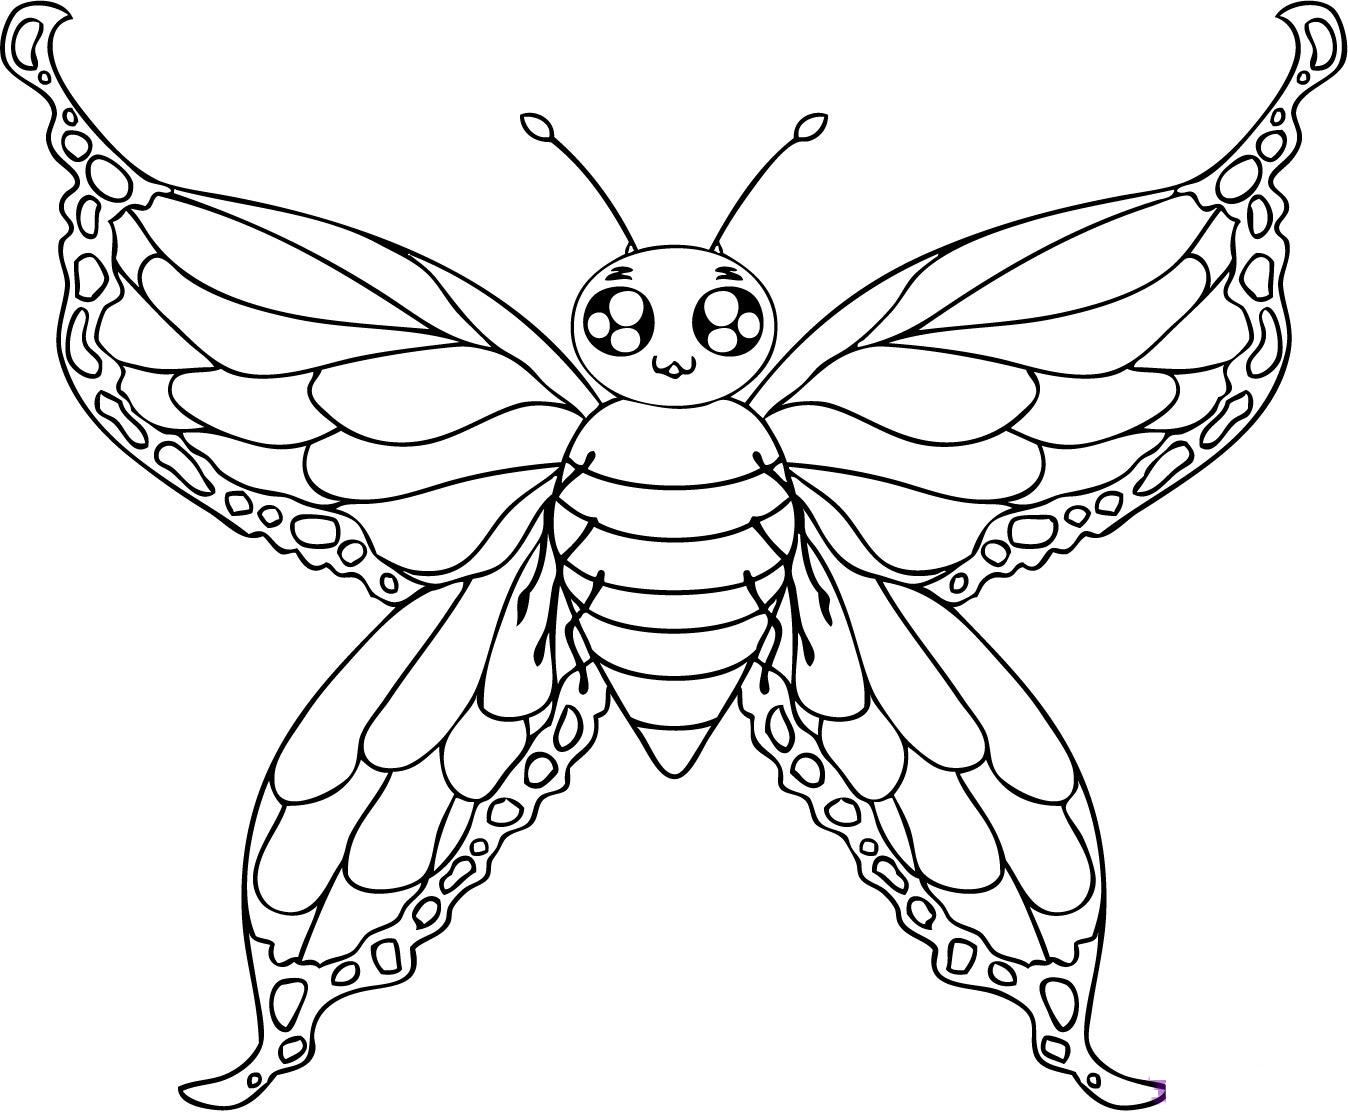 butterfly simple drawing at getdrawings com free for personal use